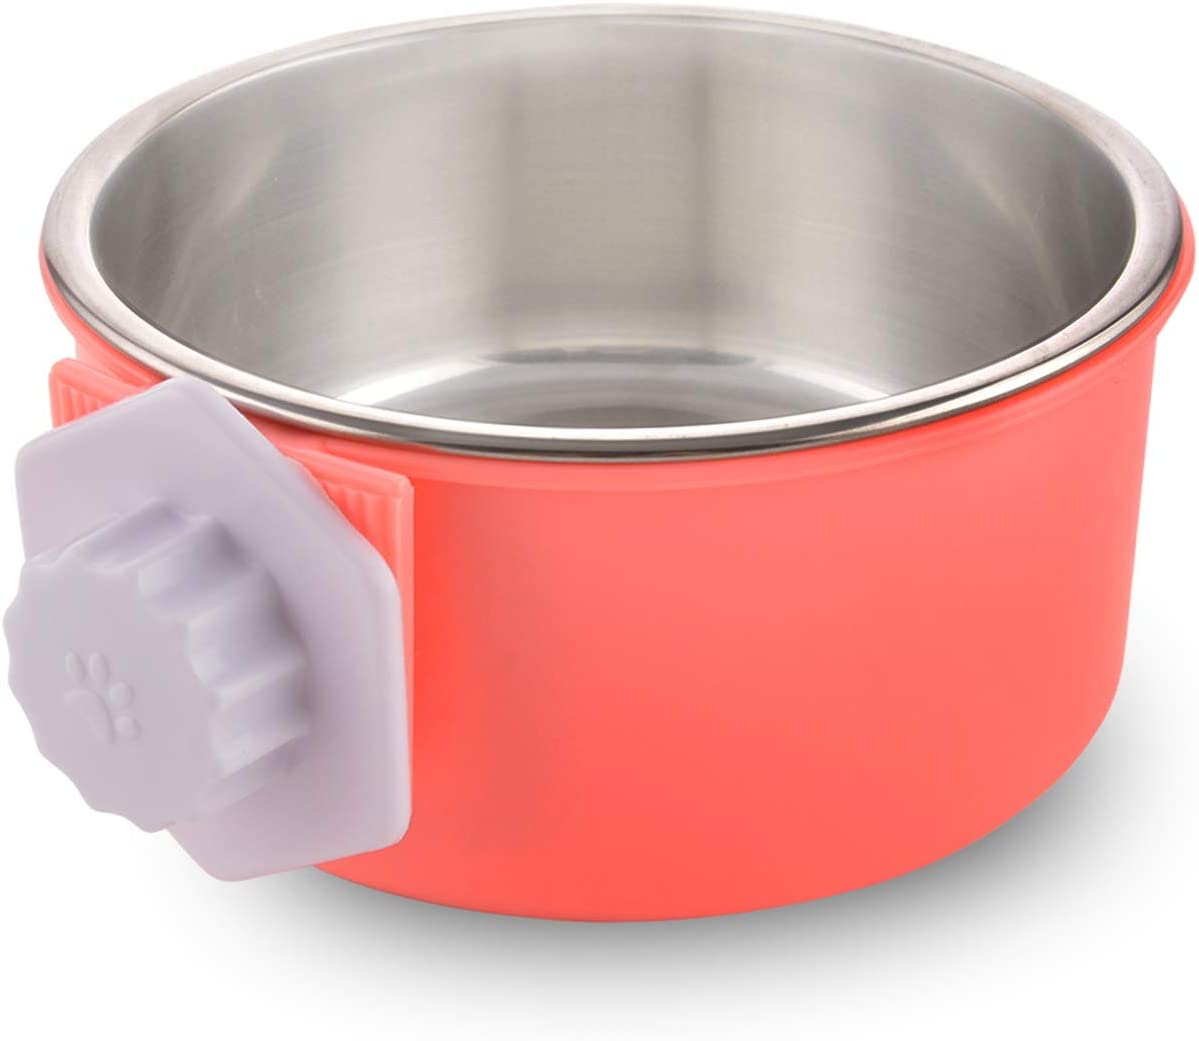 Guardians Crate Dog Bowl Removable Stainless Steel Water Food Bowls Cage Coop Cup for Cat Puppy Bird Pets (Small, Pink Orange)